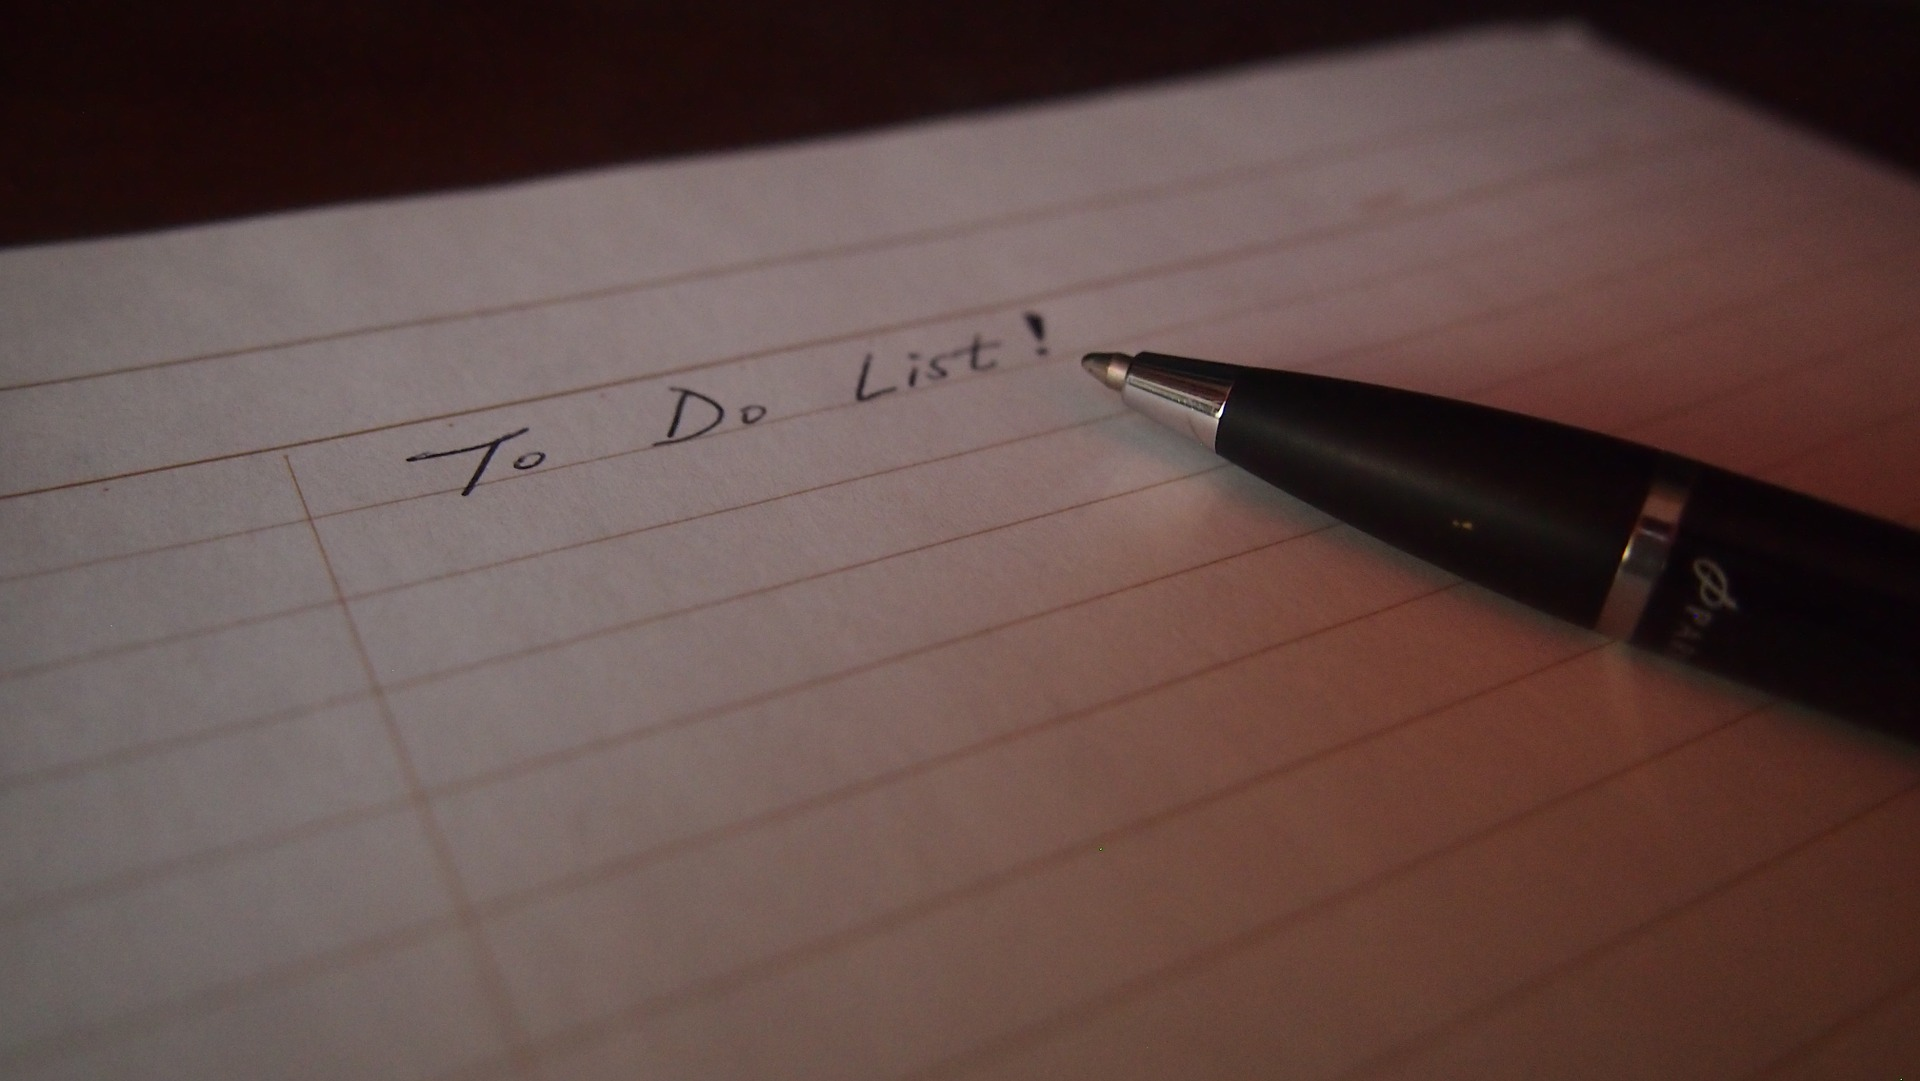 start a task list today